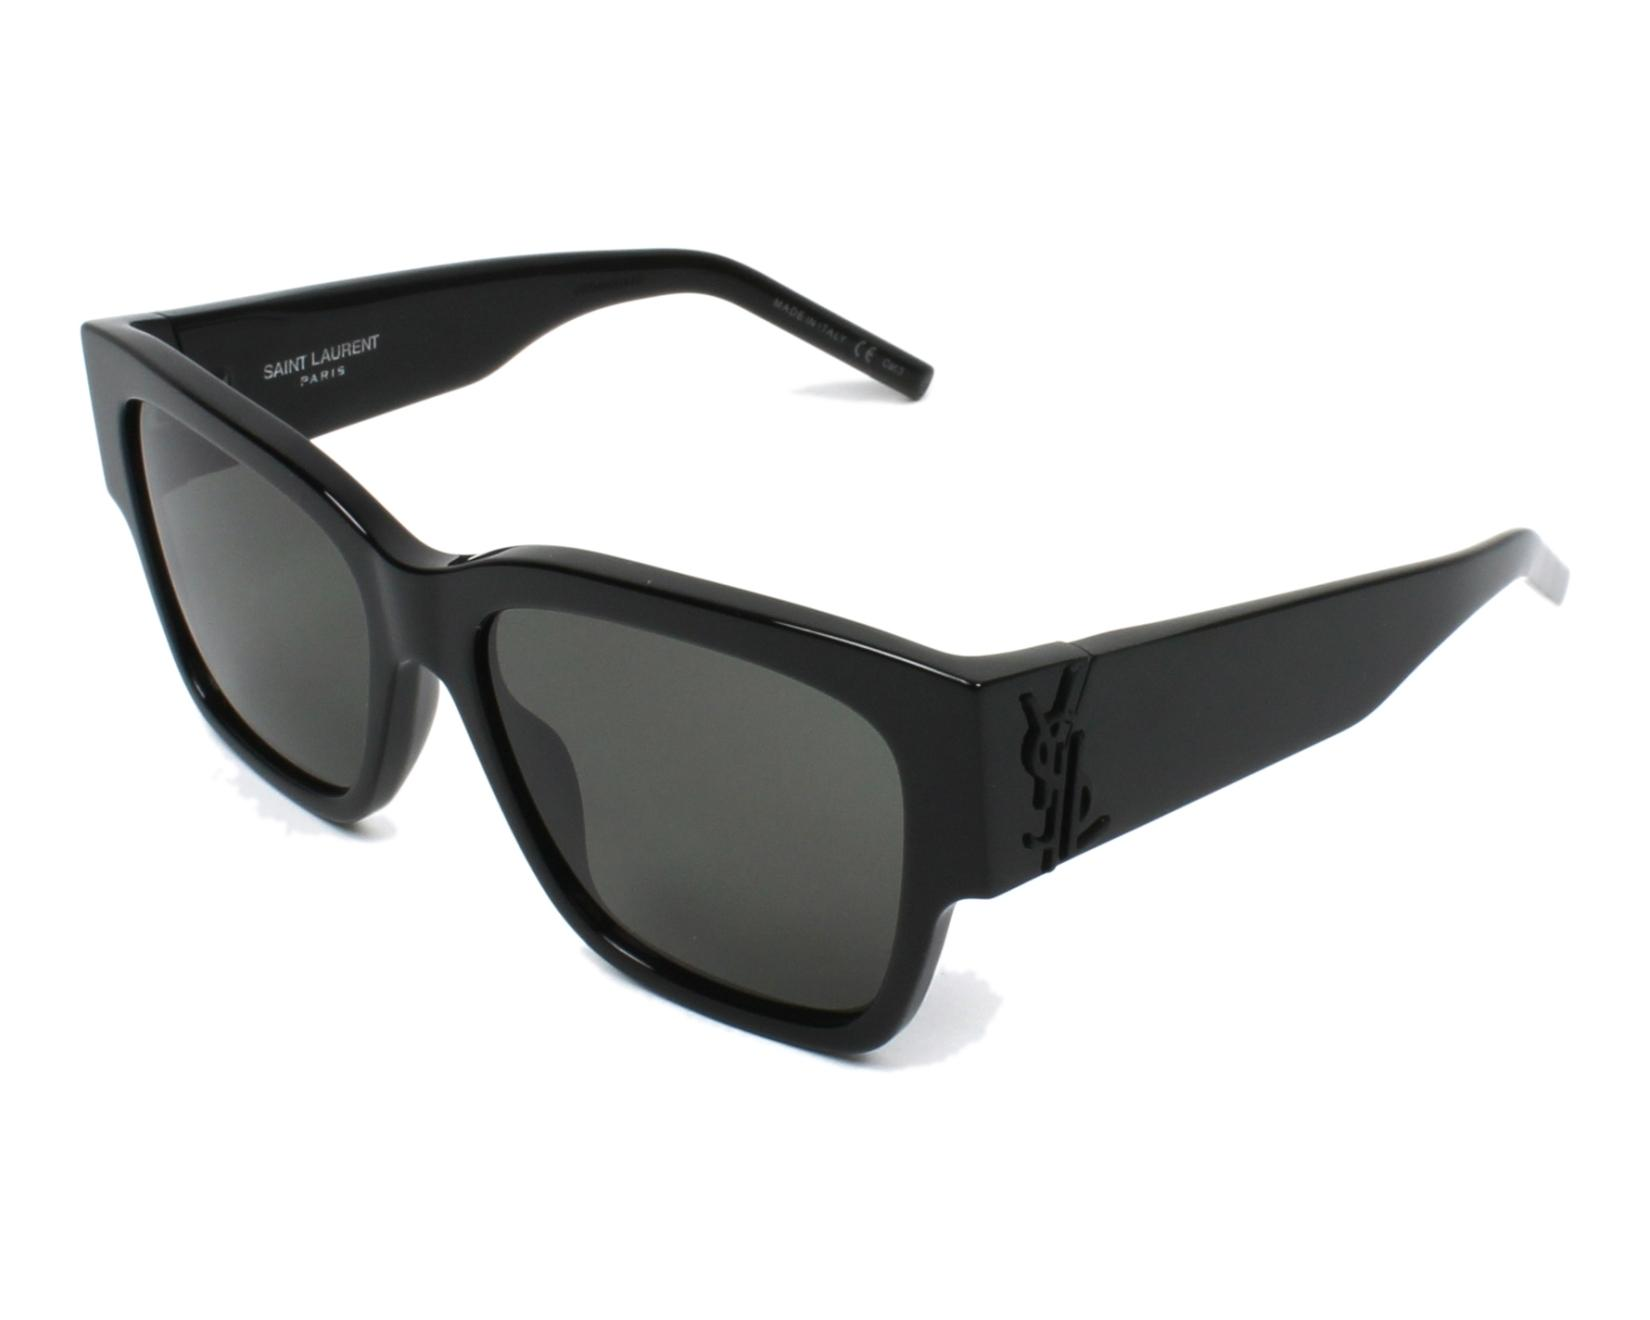 a7f69da2ad1 Sunglasses Yves Saint Laurent SLM-21 001 56-17 Black profile view